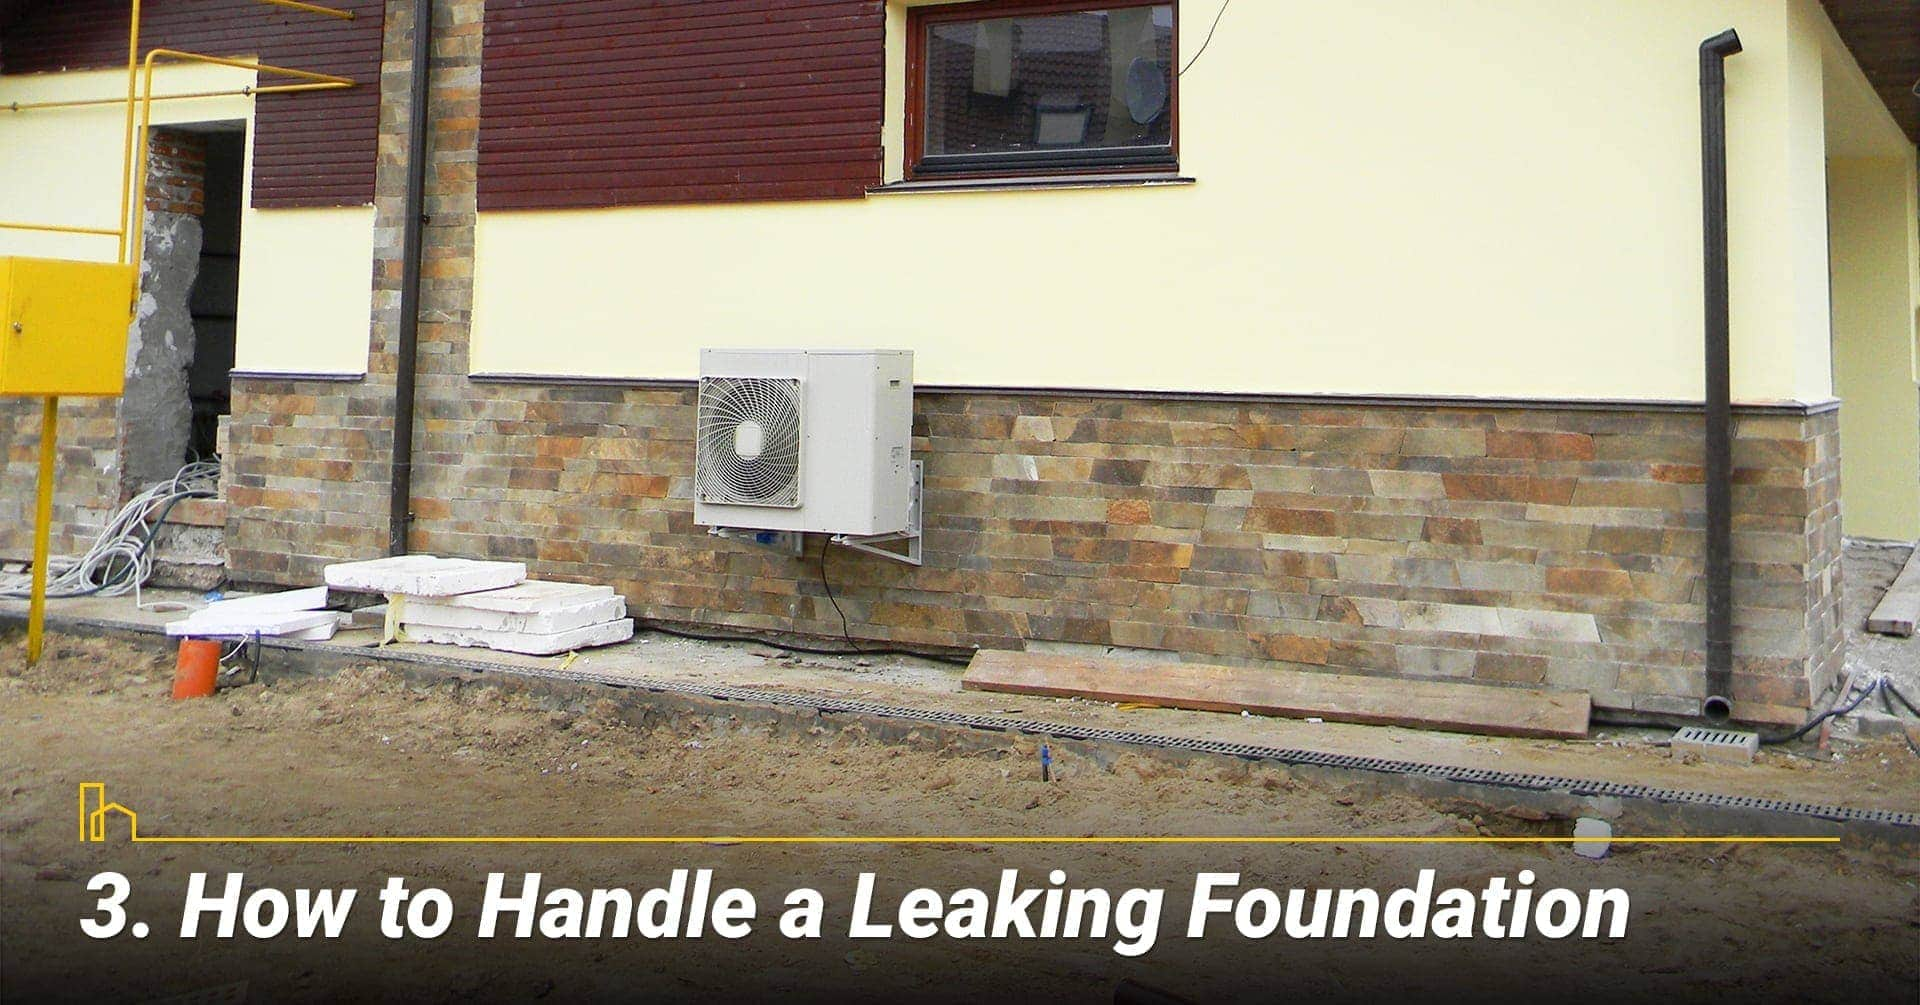 How to Handle a Leaking Foundation, ways to fix foundation leaks